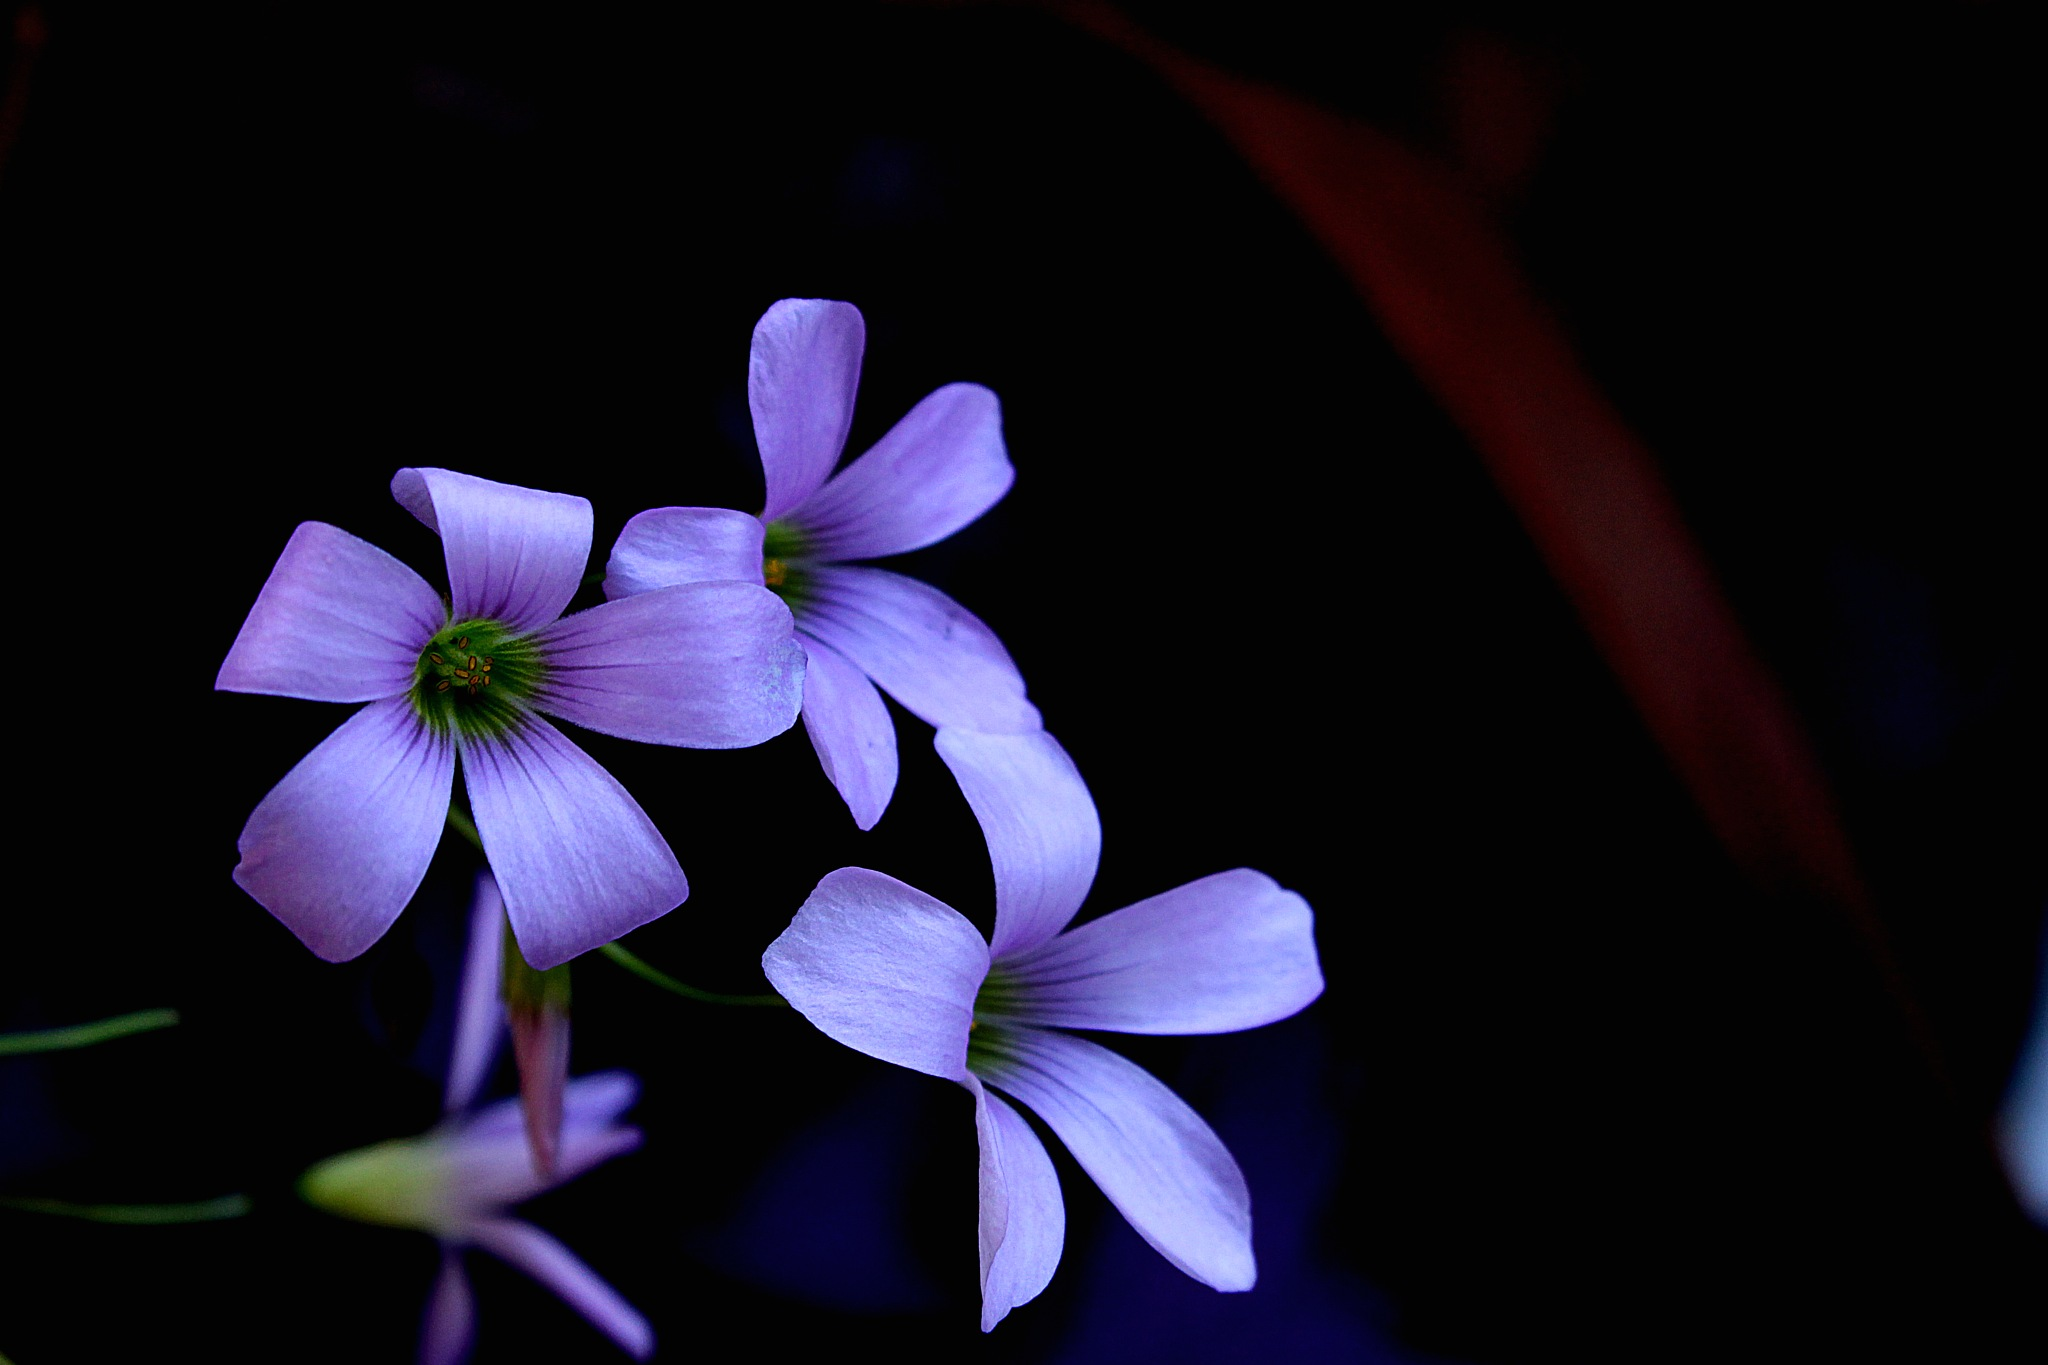 violet flower by Gadini